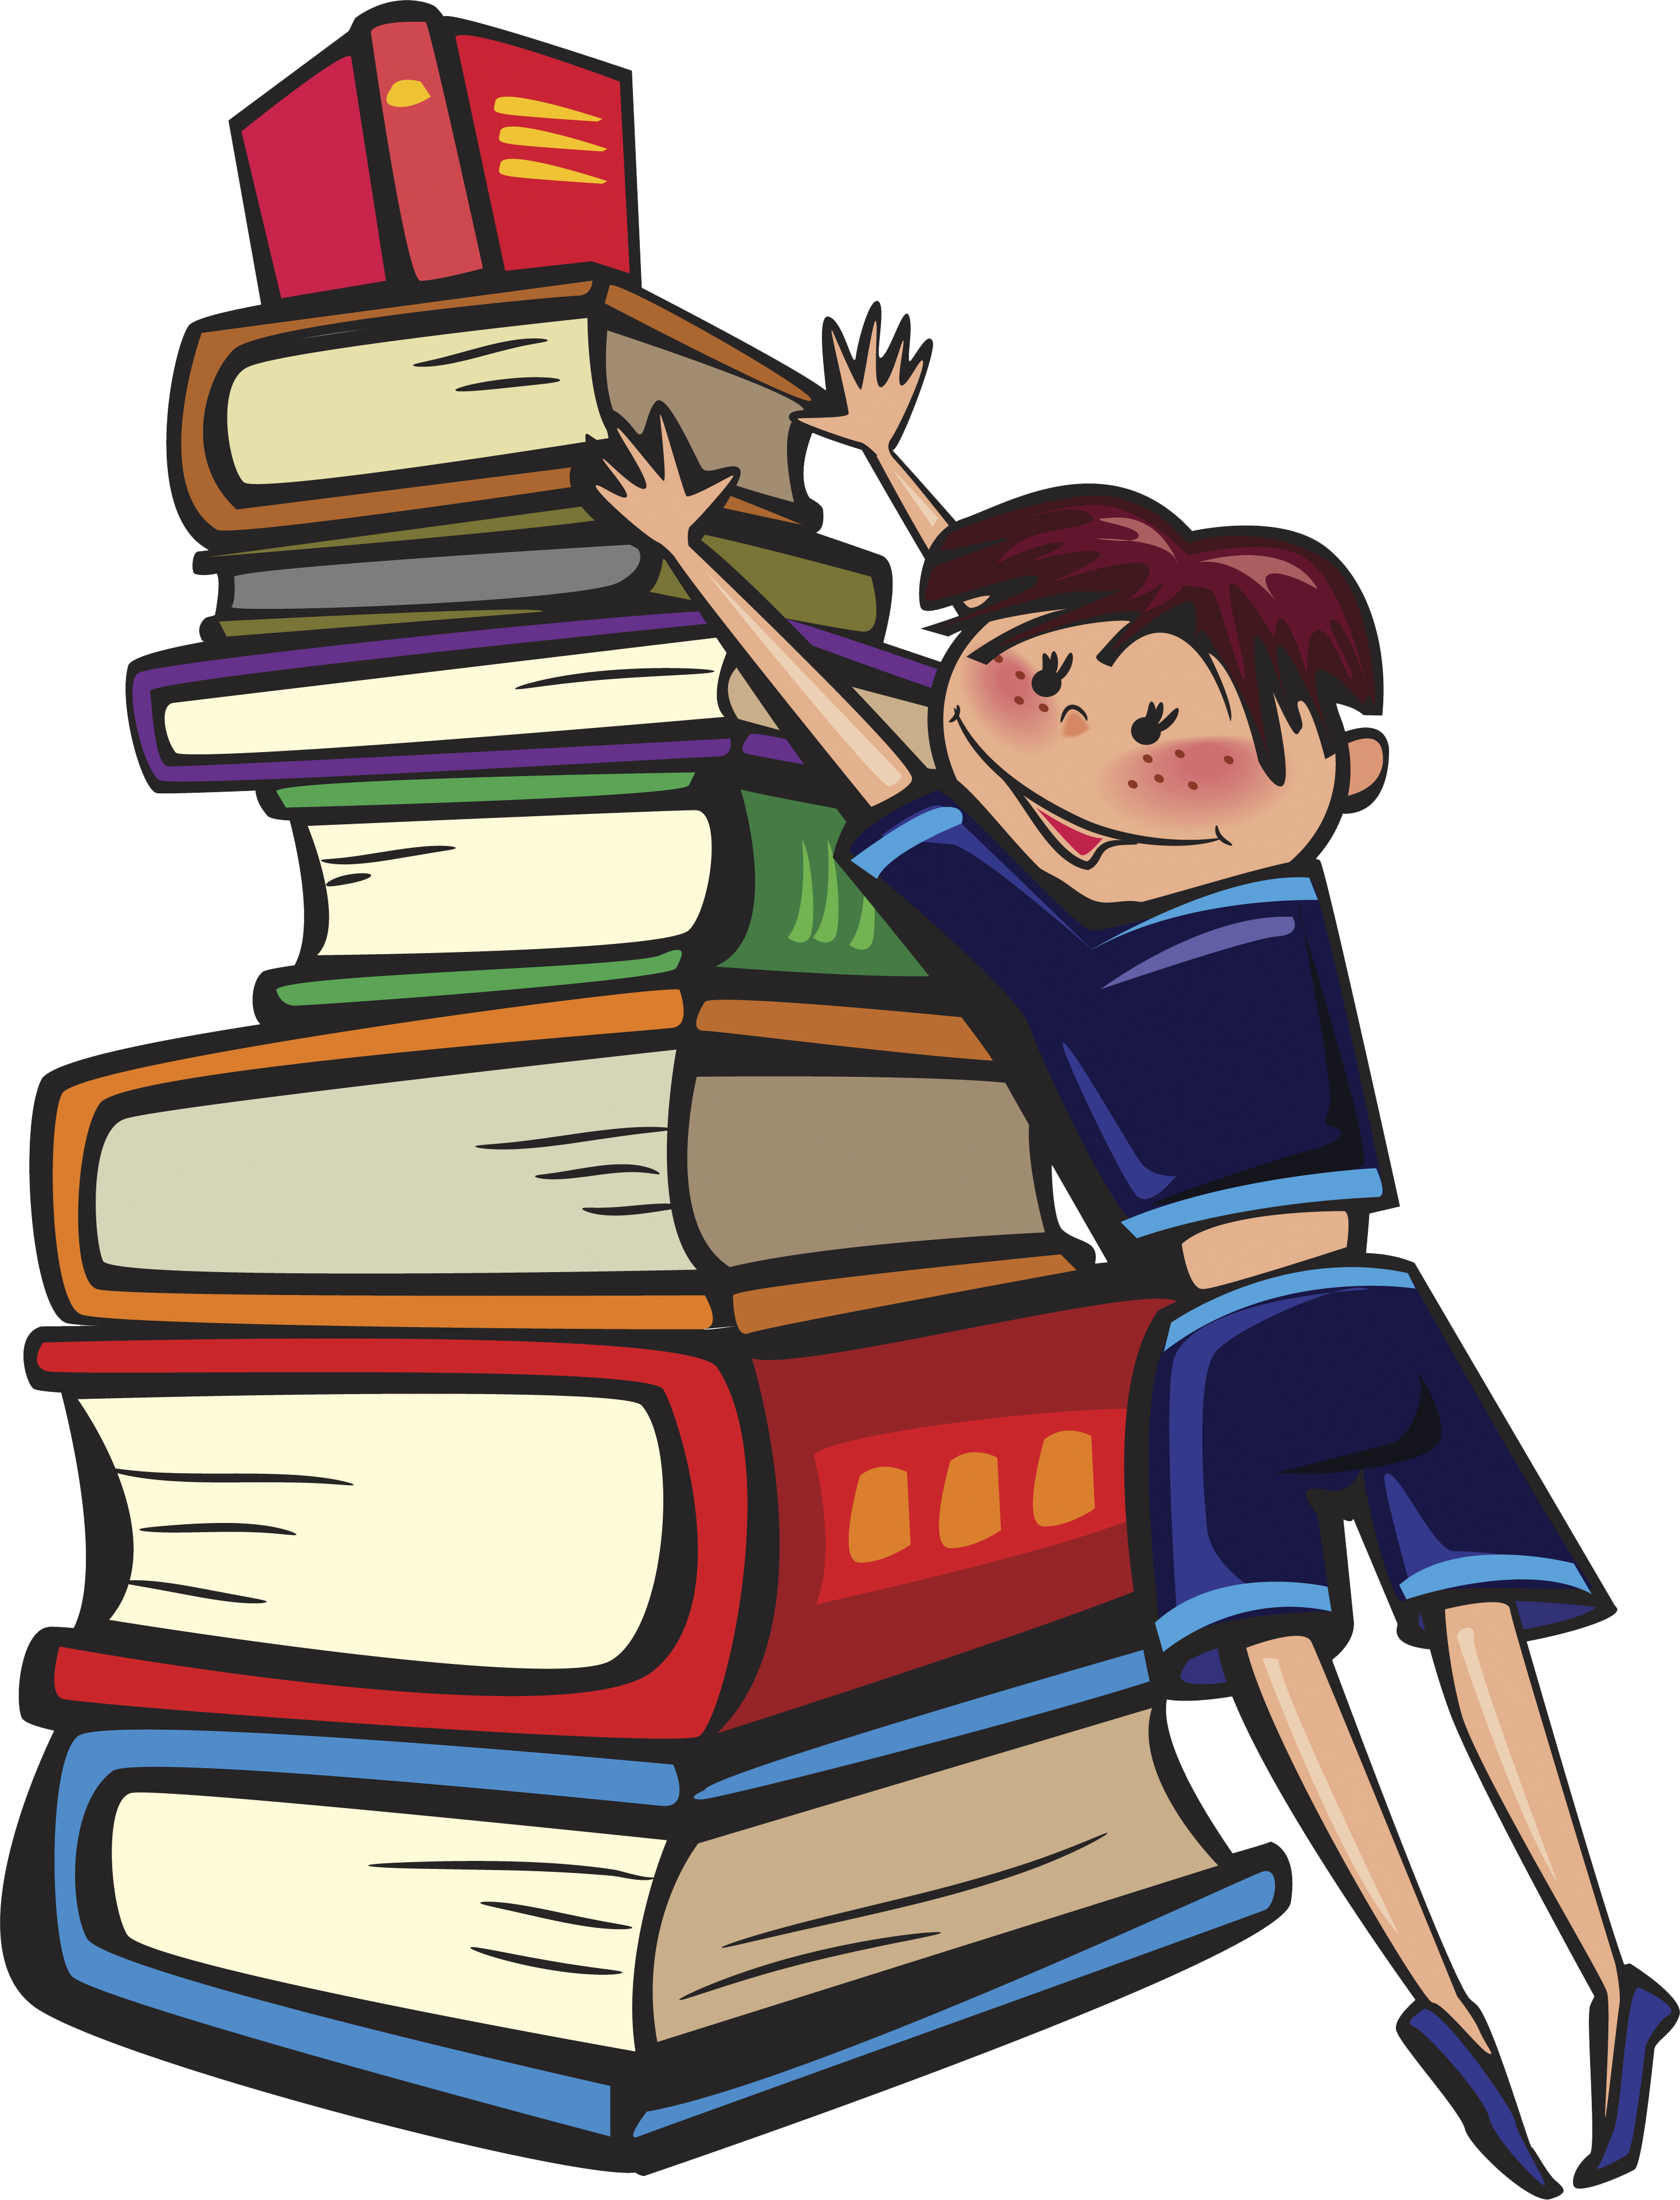 school books clipart clipground 2933 x 3841 · png